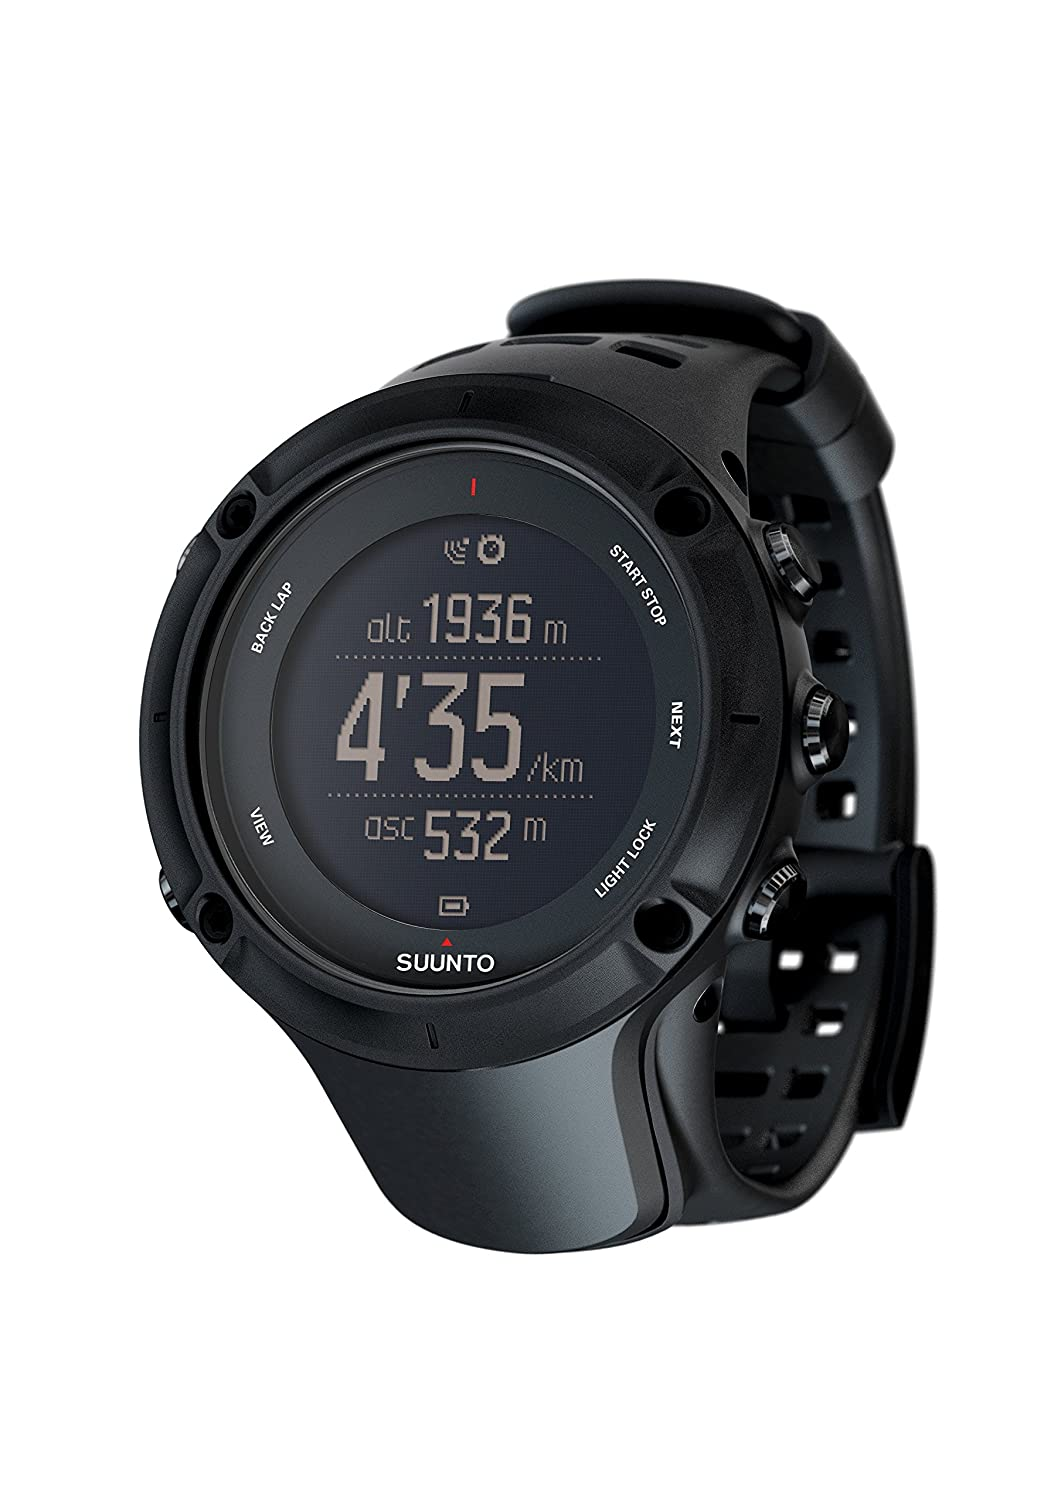 SUUNTO Ambit3 Peak review